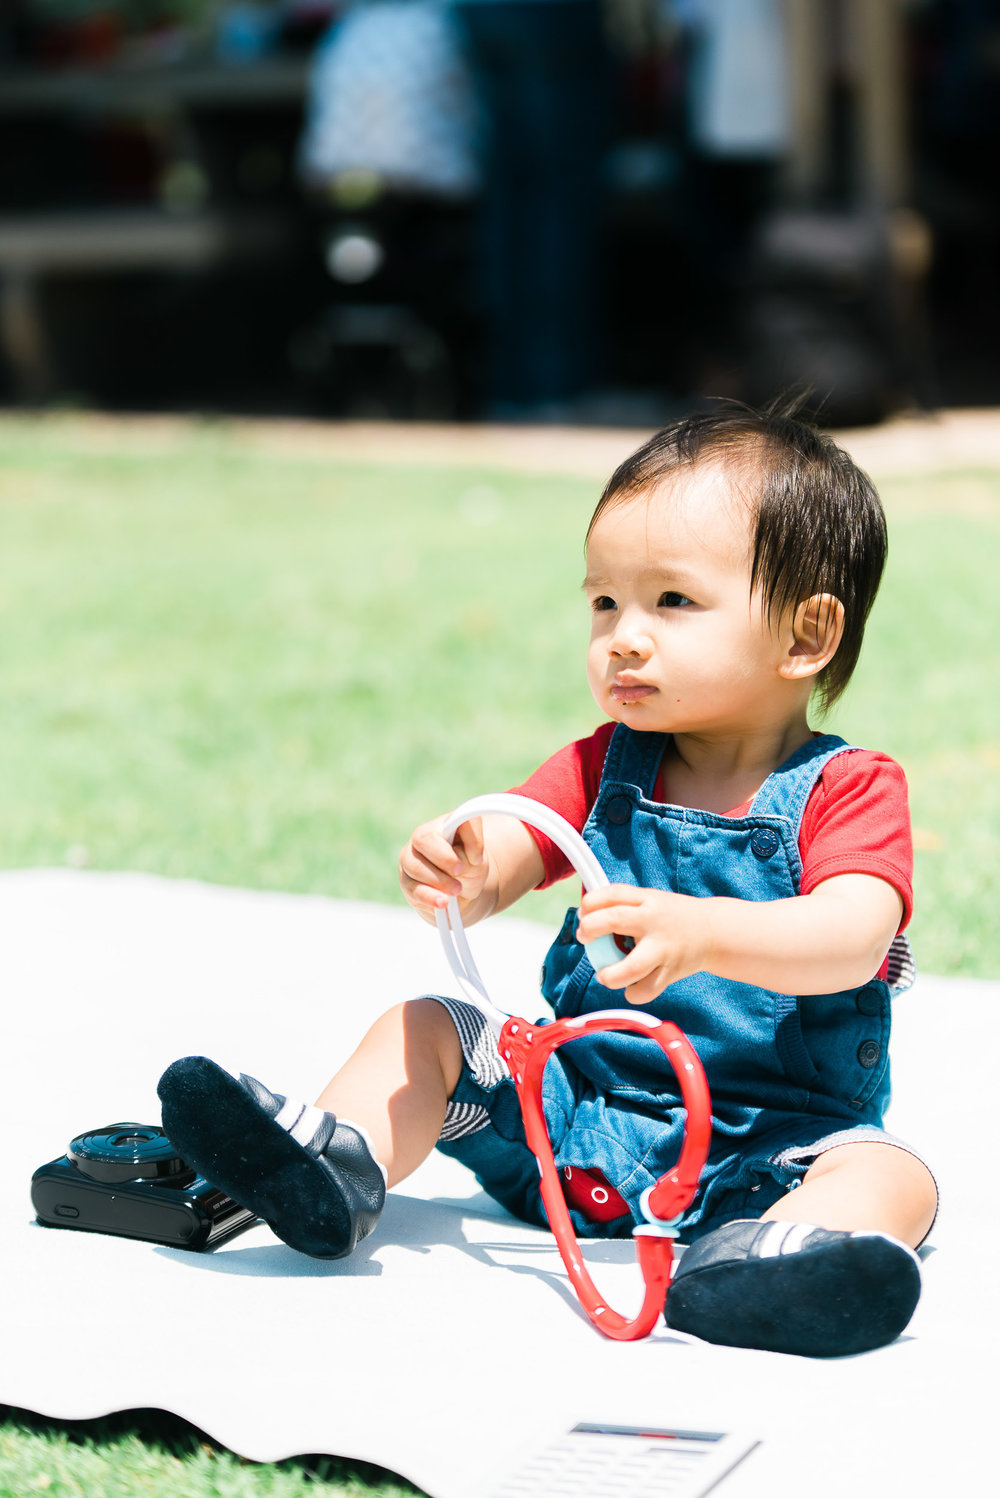 Bryan-Miraflor-Photography-Davin-First-Birthday-Irvine-20170603-0212.jpg